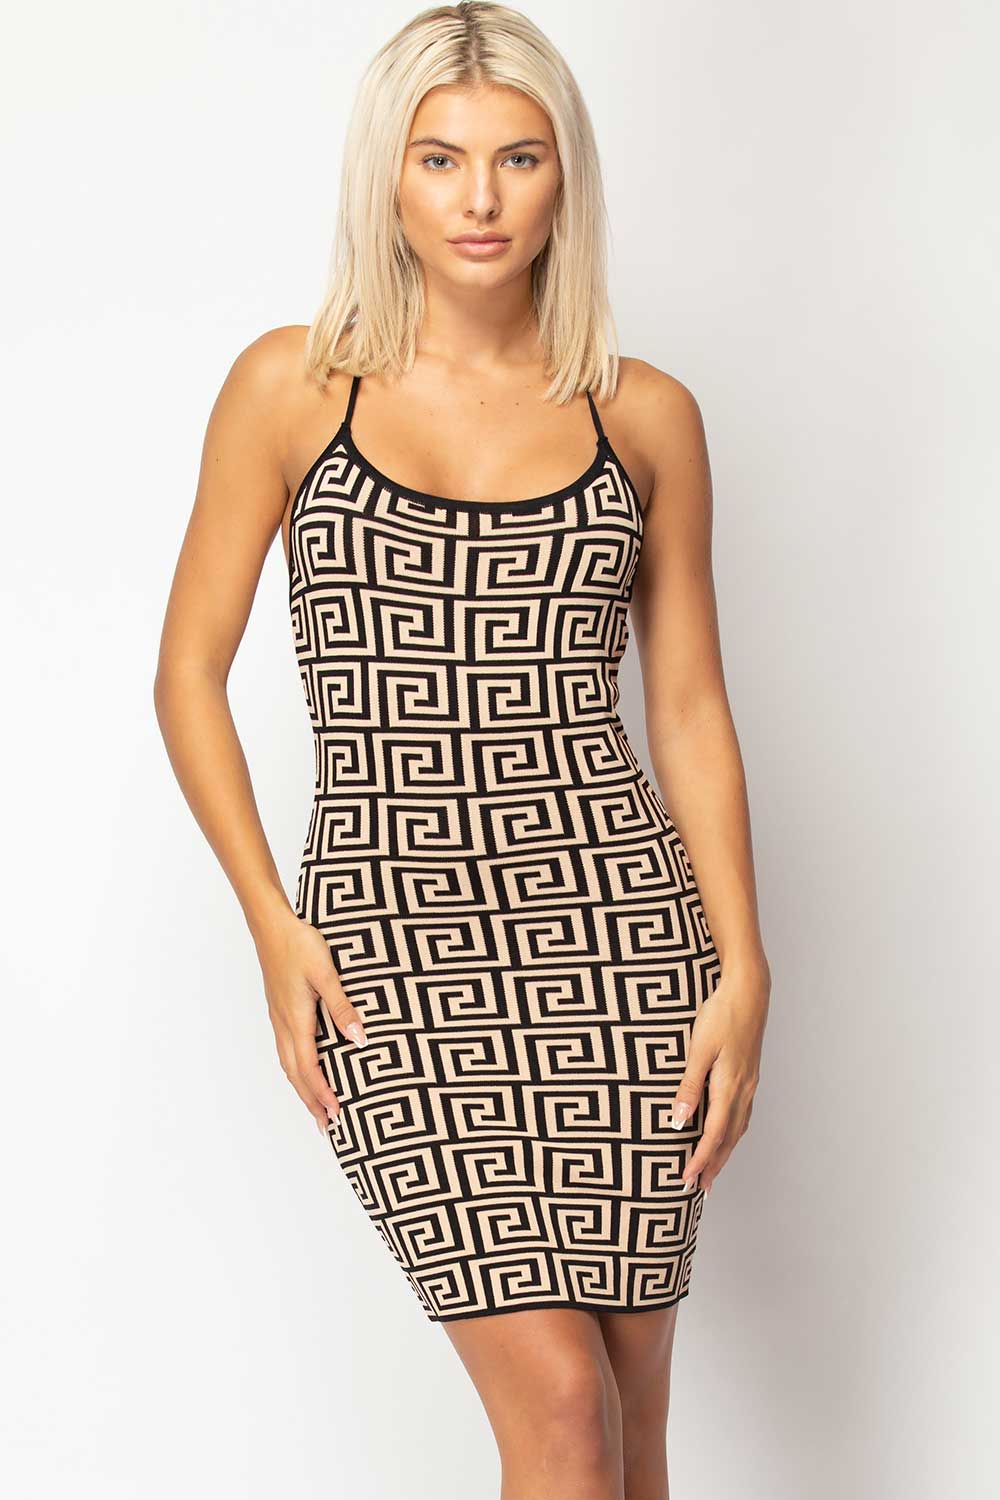 fendi inspired bodycon dress